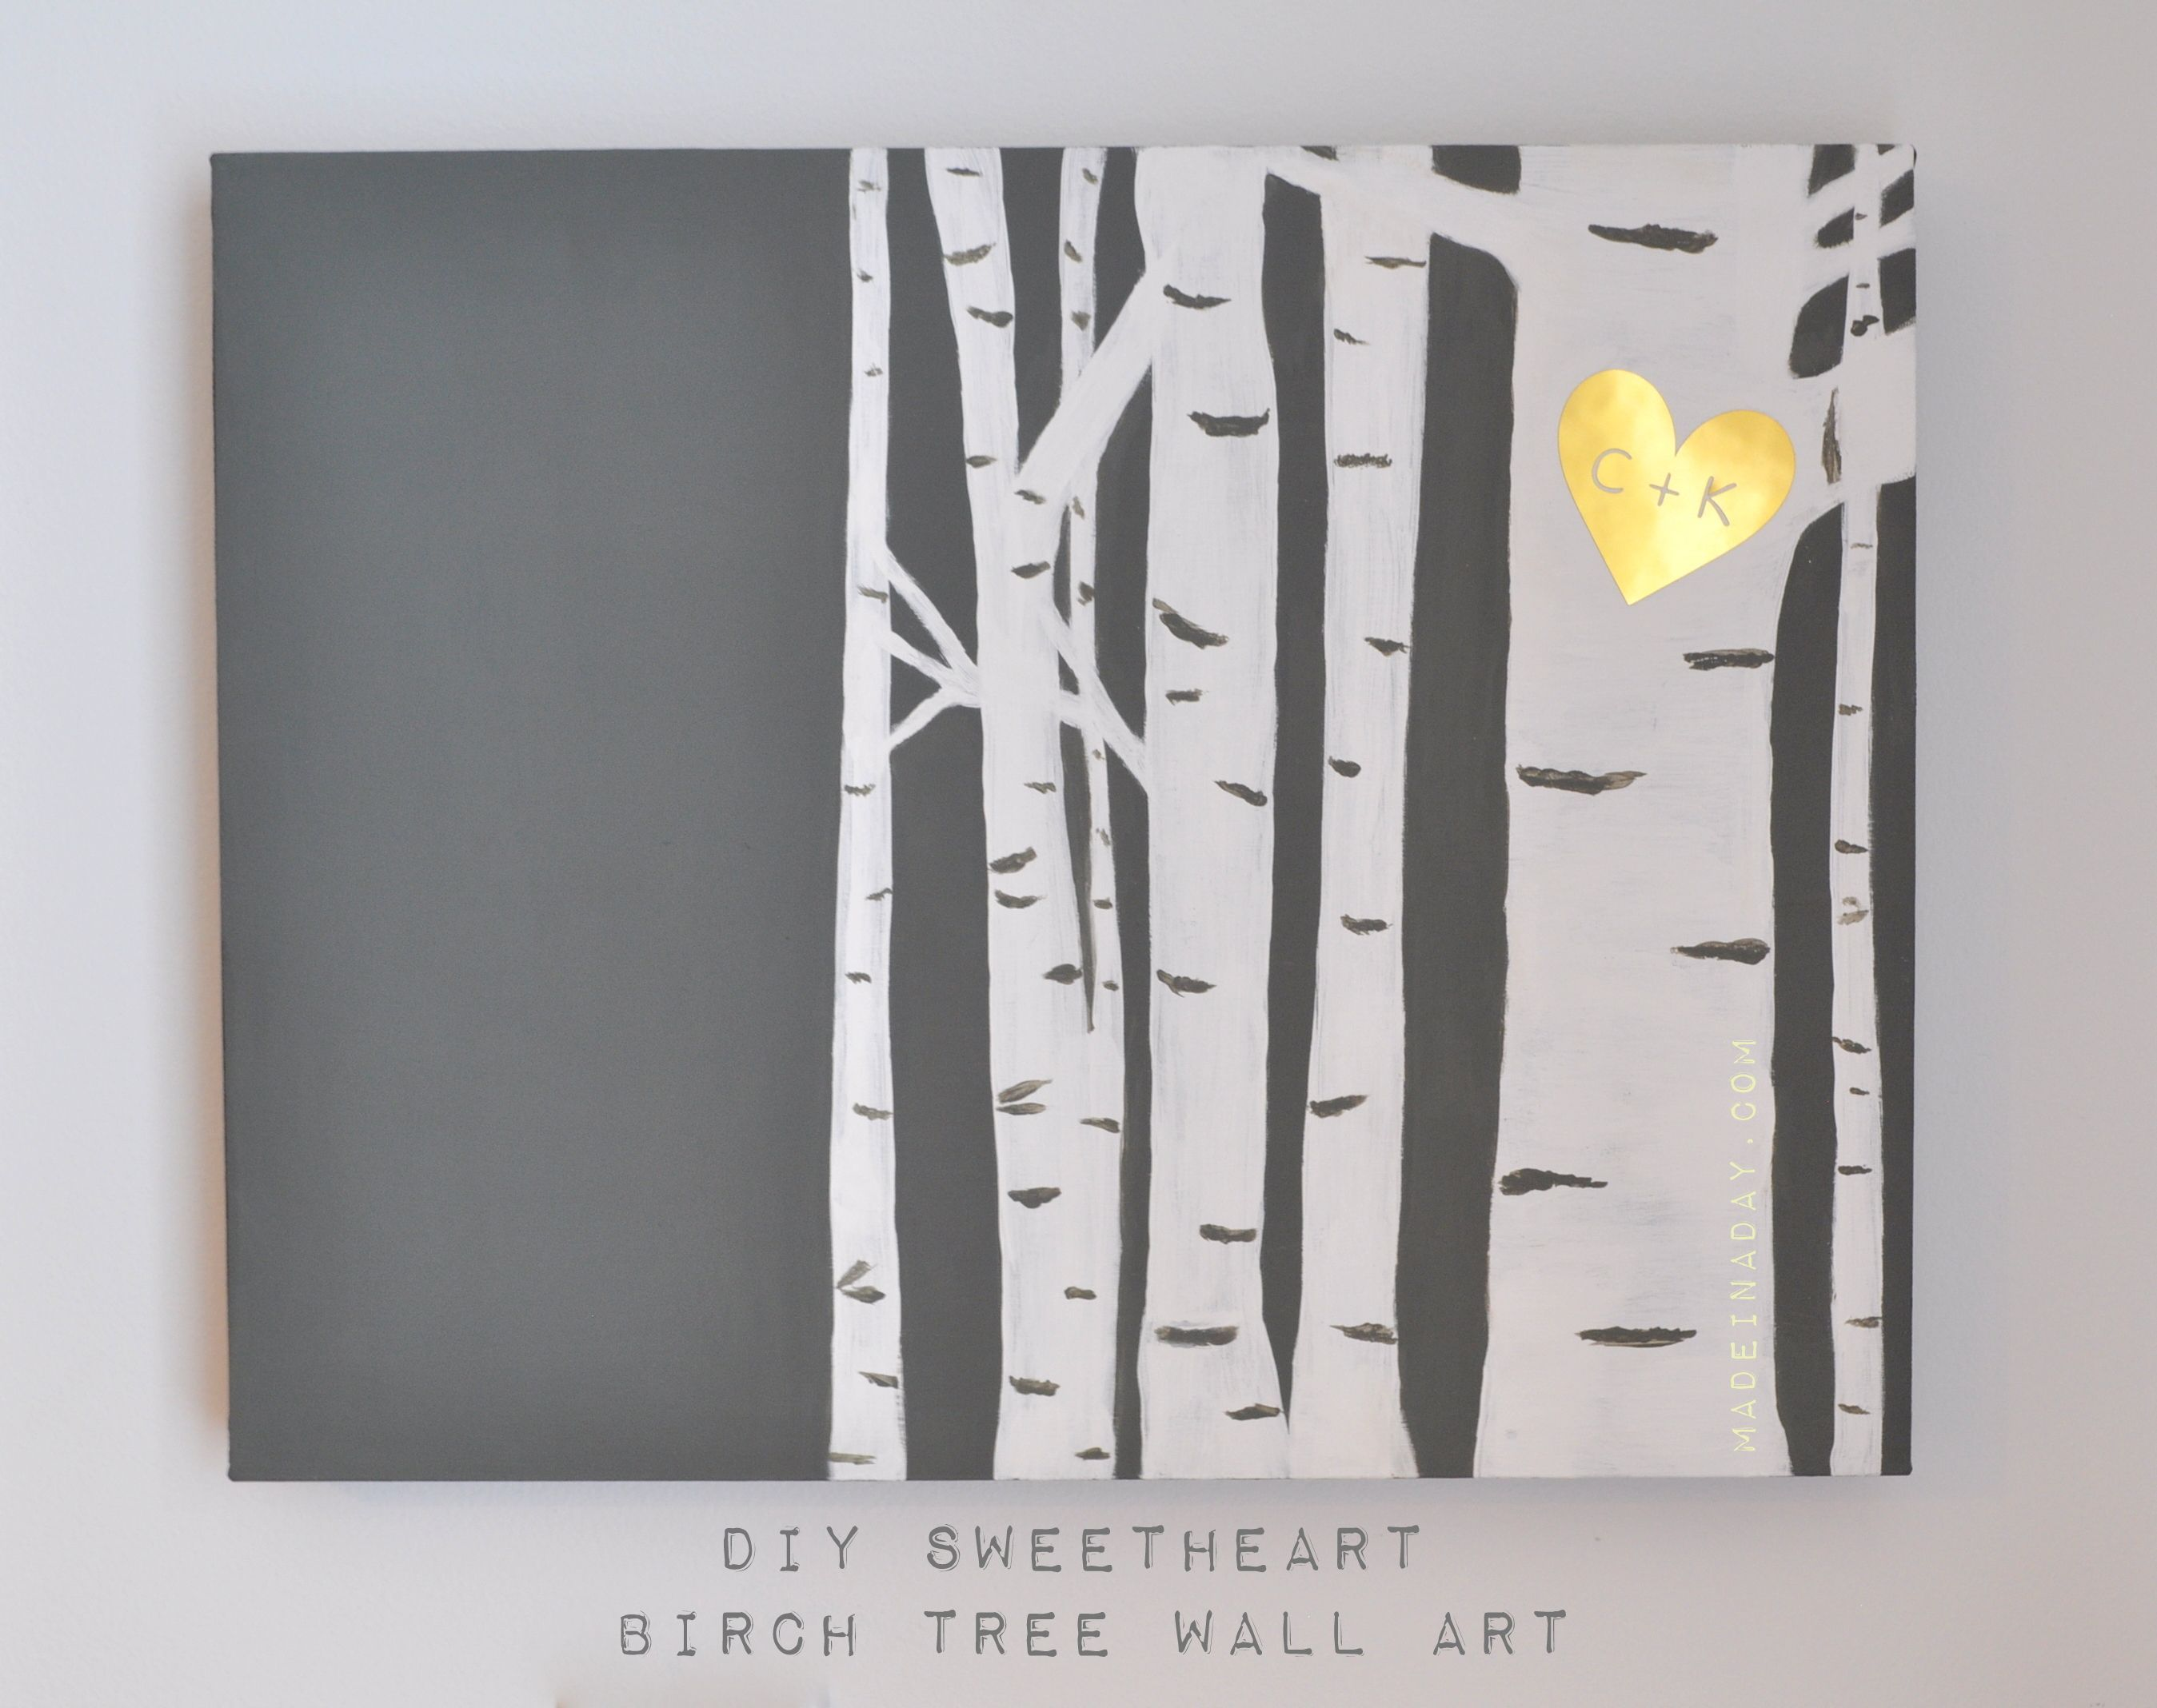 Birch tree wall art easy diy paint over an old canvas heart on